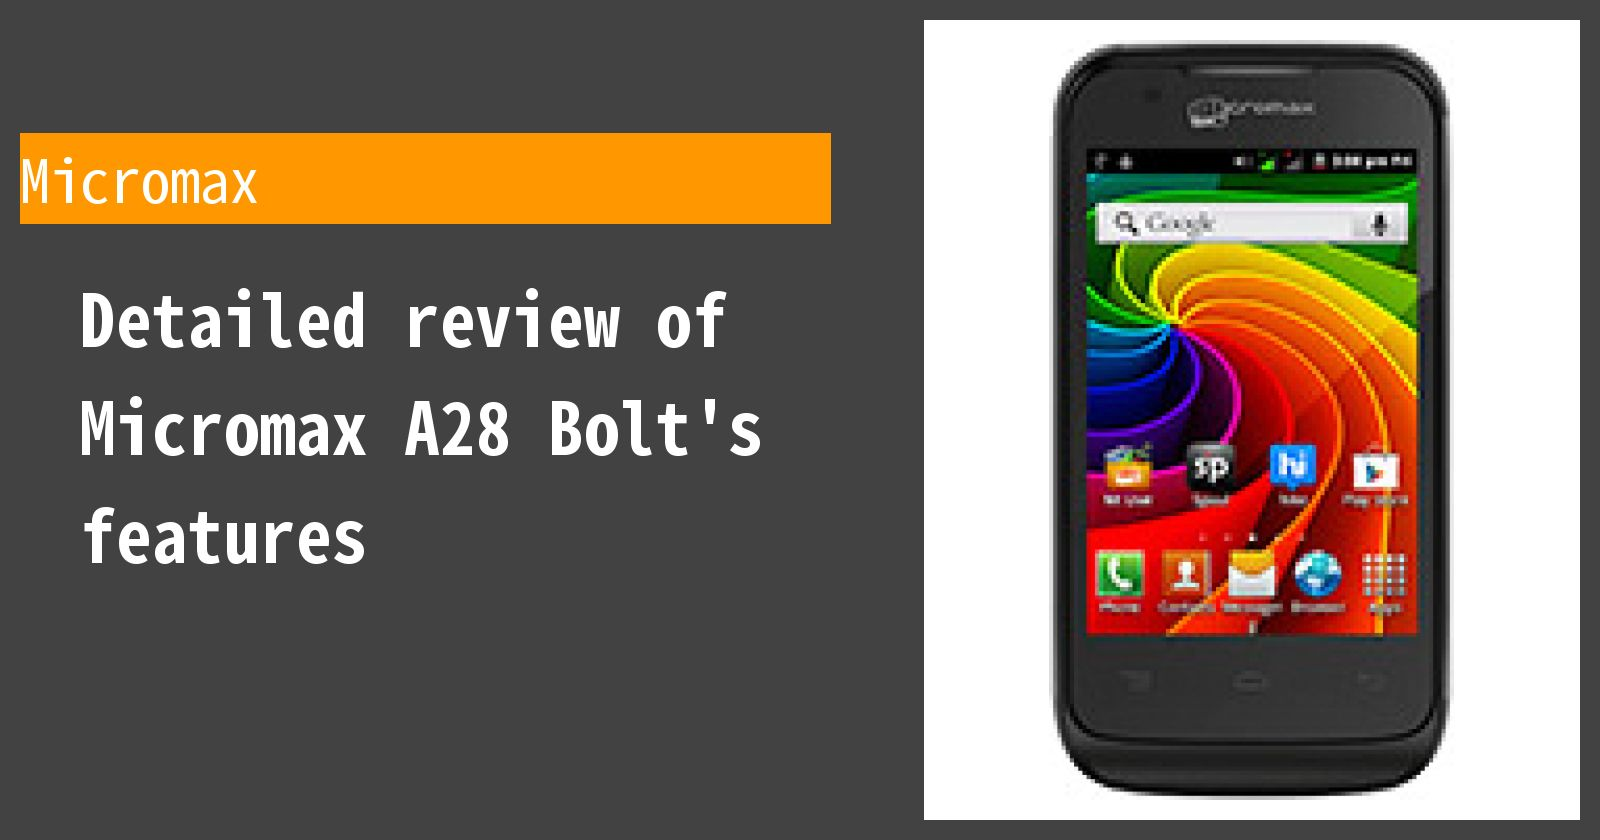 Detailed review of Micromax A28 Bolt's features